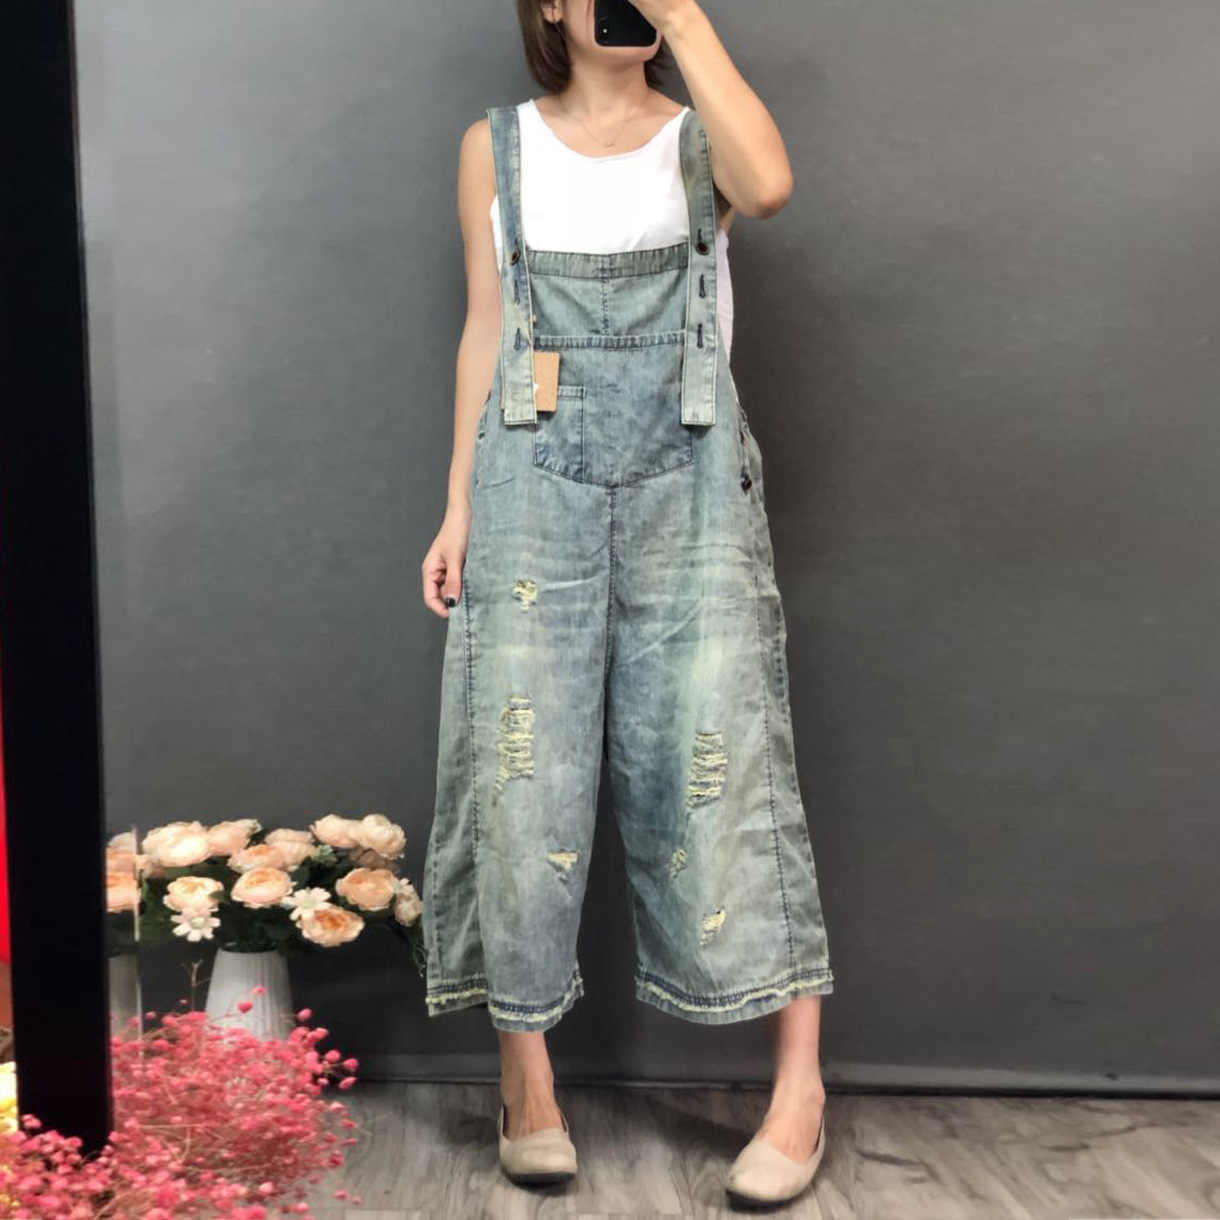 fbd0fb81803 Women Summer Autumn Vintage Holes Bleached Jumpsuits Denim Trousers Female  Jeans Ladies Overalls Ripped Scratched Retro